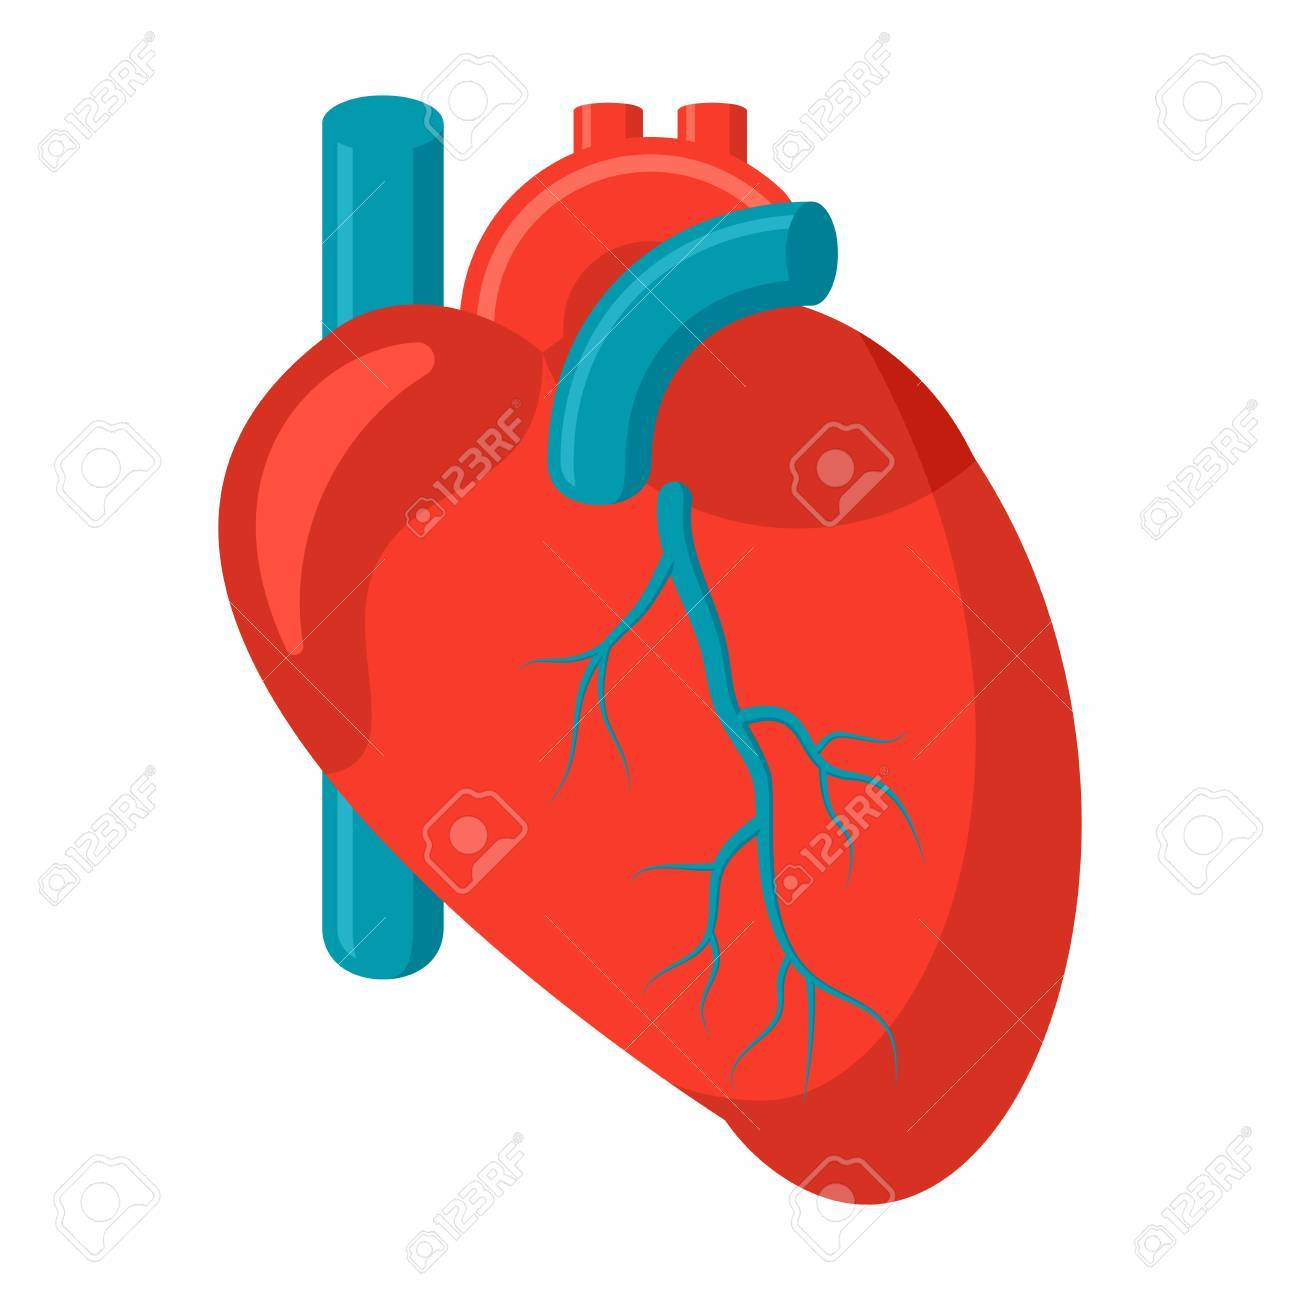 human heart icon royalty free cliparts vectors and stock rh 123rf com human heart vector image human heart vector free